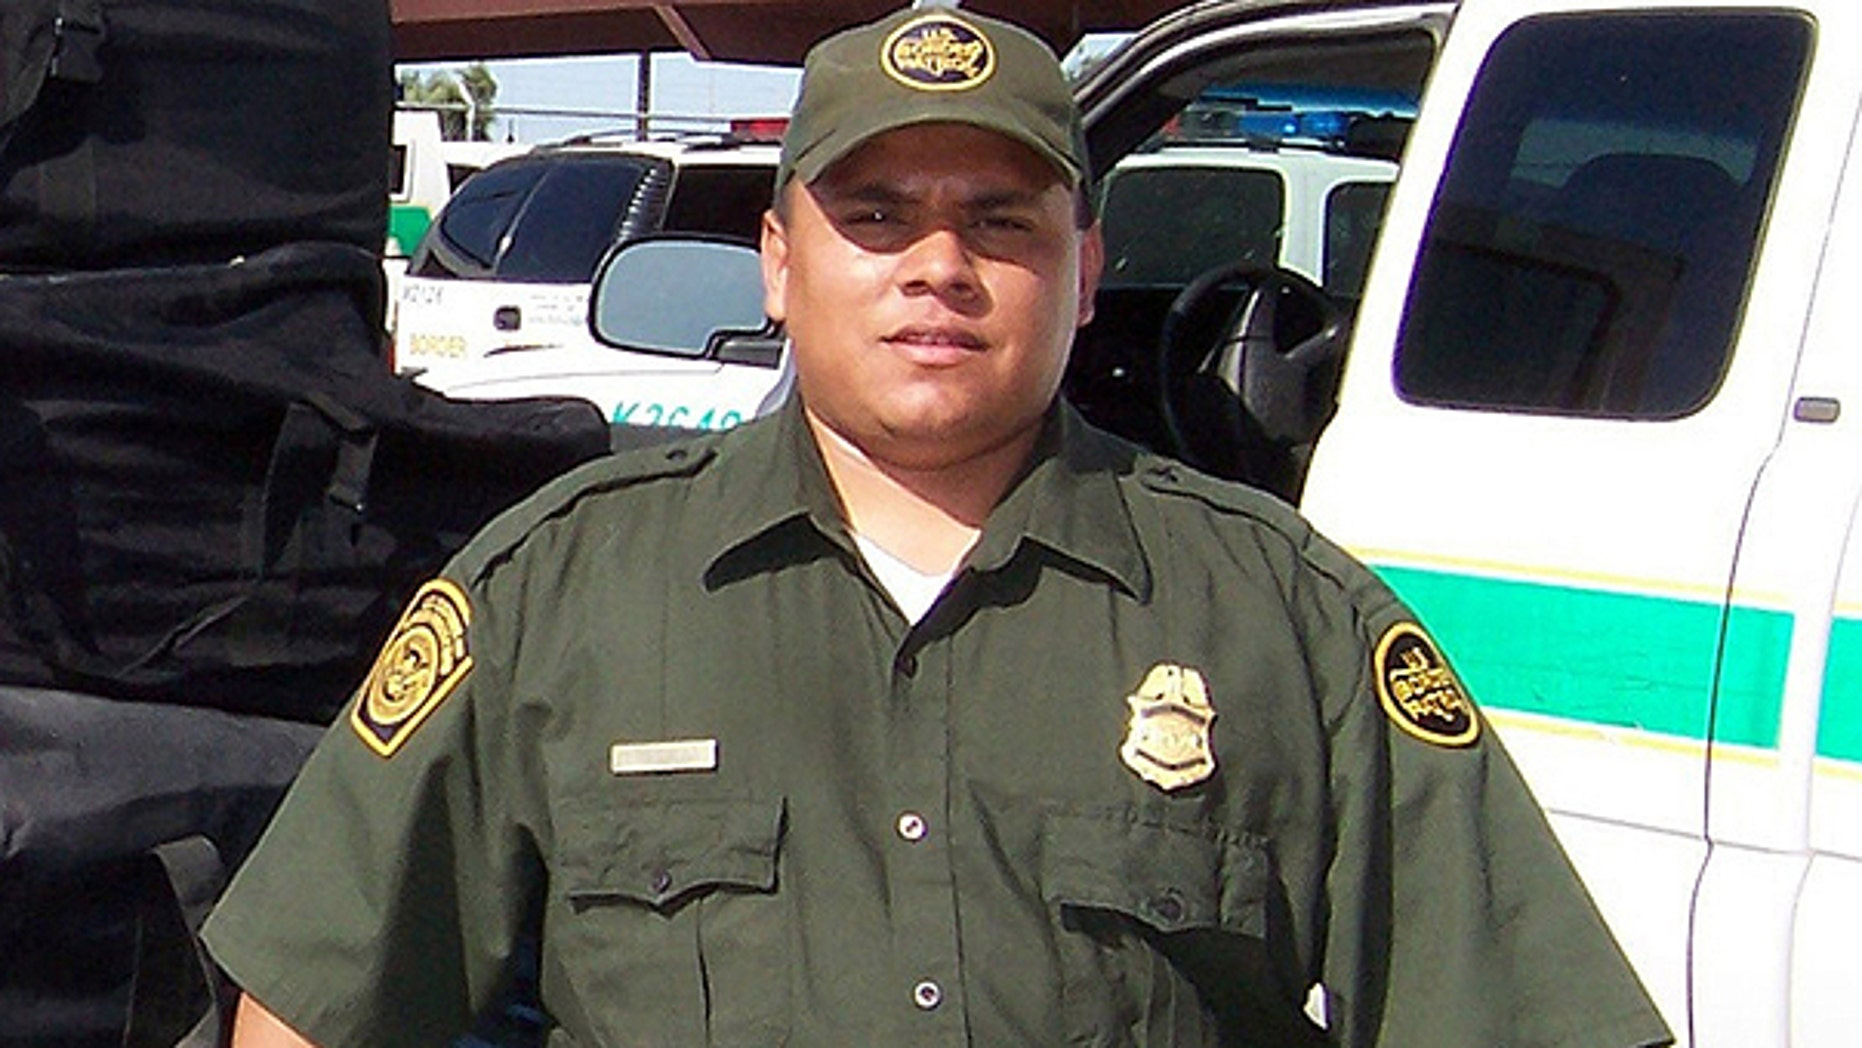 This undated file photo released by the U.S. Border Patrol on Jan. 24, 2008 shows agent Luis Aguilar. Aguilar, 32, was placing spike strips in the path of two vehicles believed to have illegally entered the United States from Mexico when one of the vehicles struck and killed him on Jan. 19, 2008.